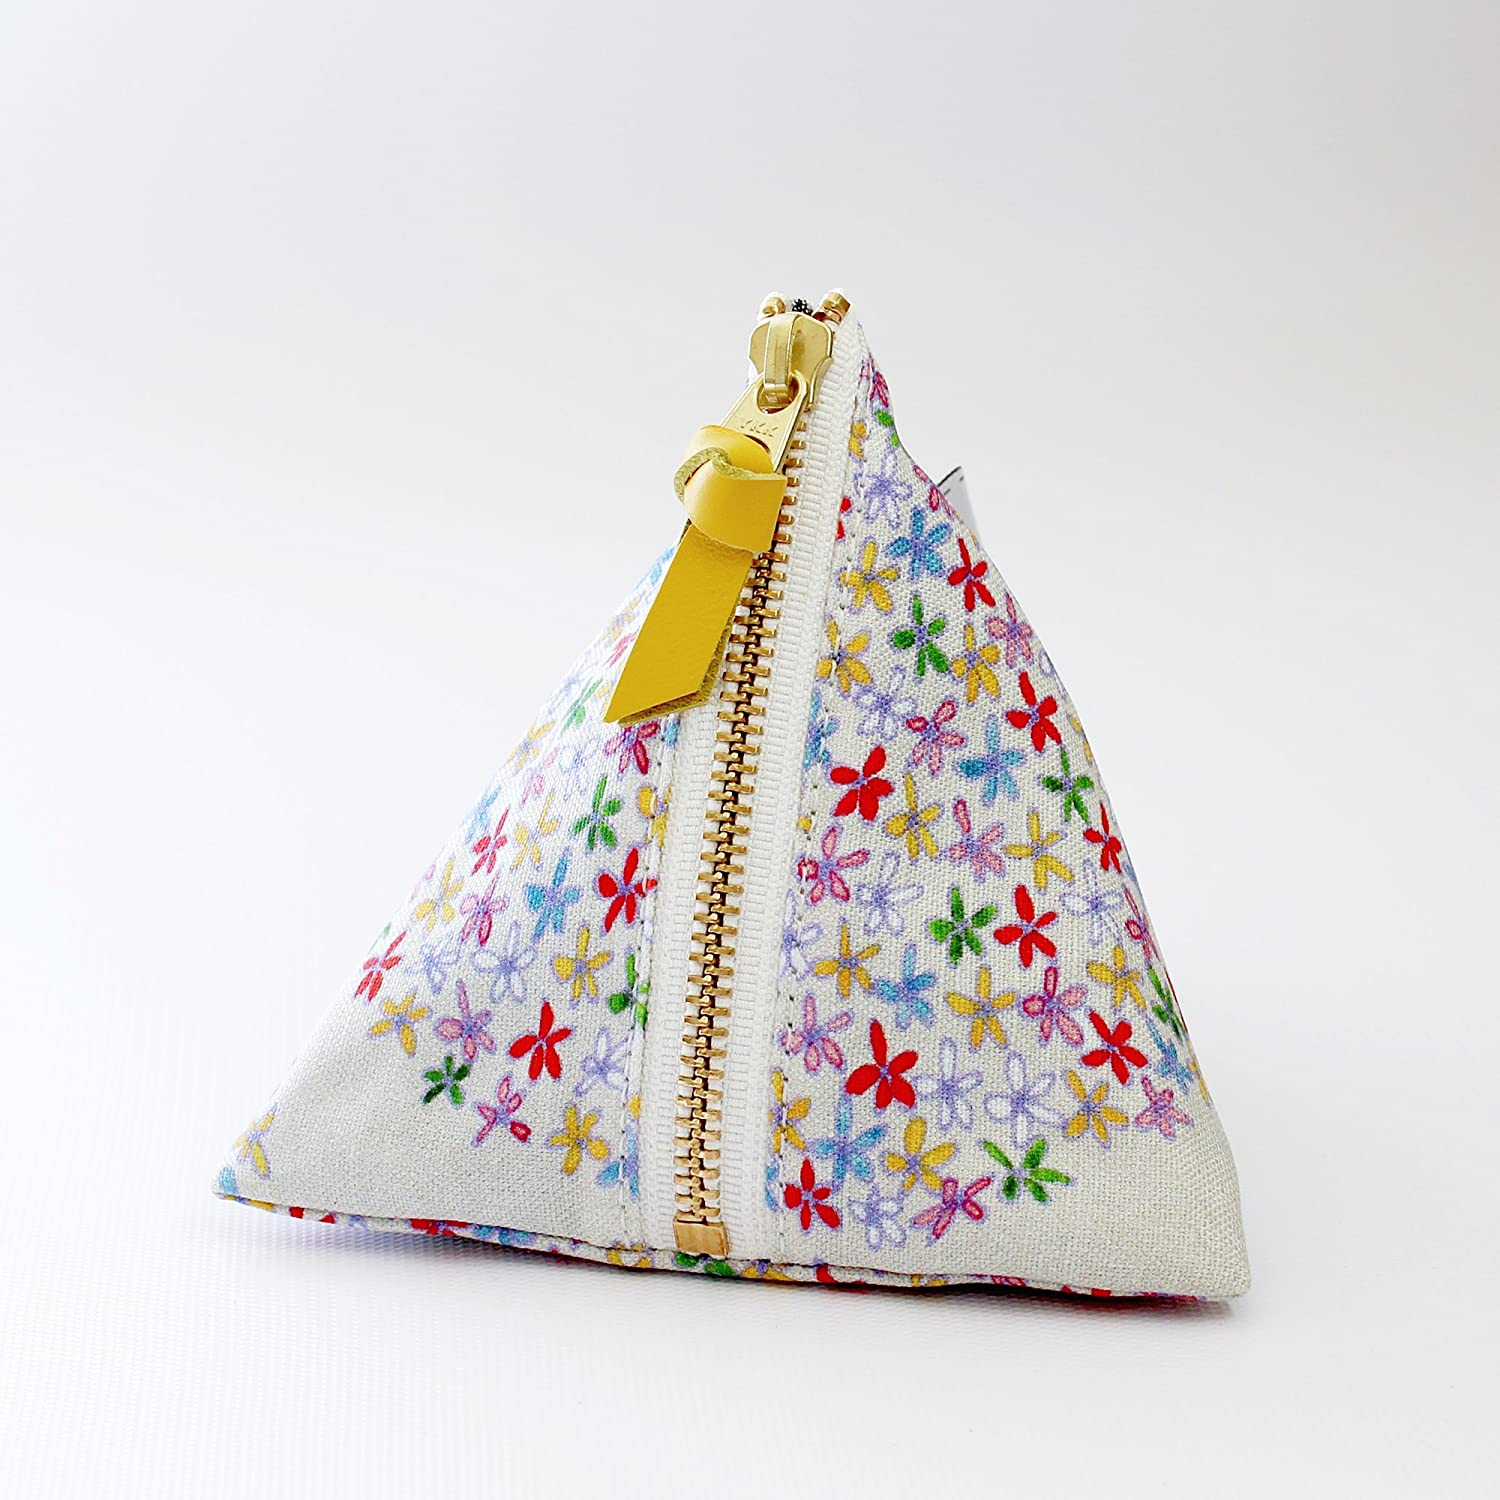 Floral triangle zipper pouch, Emma